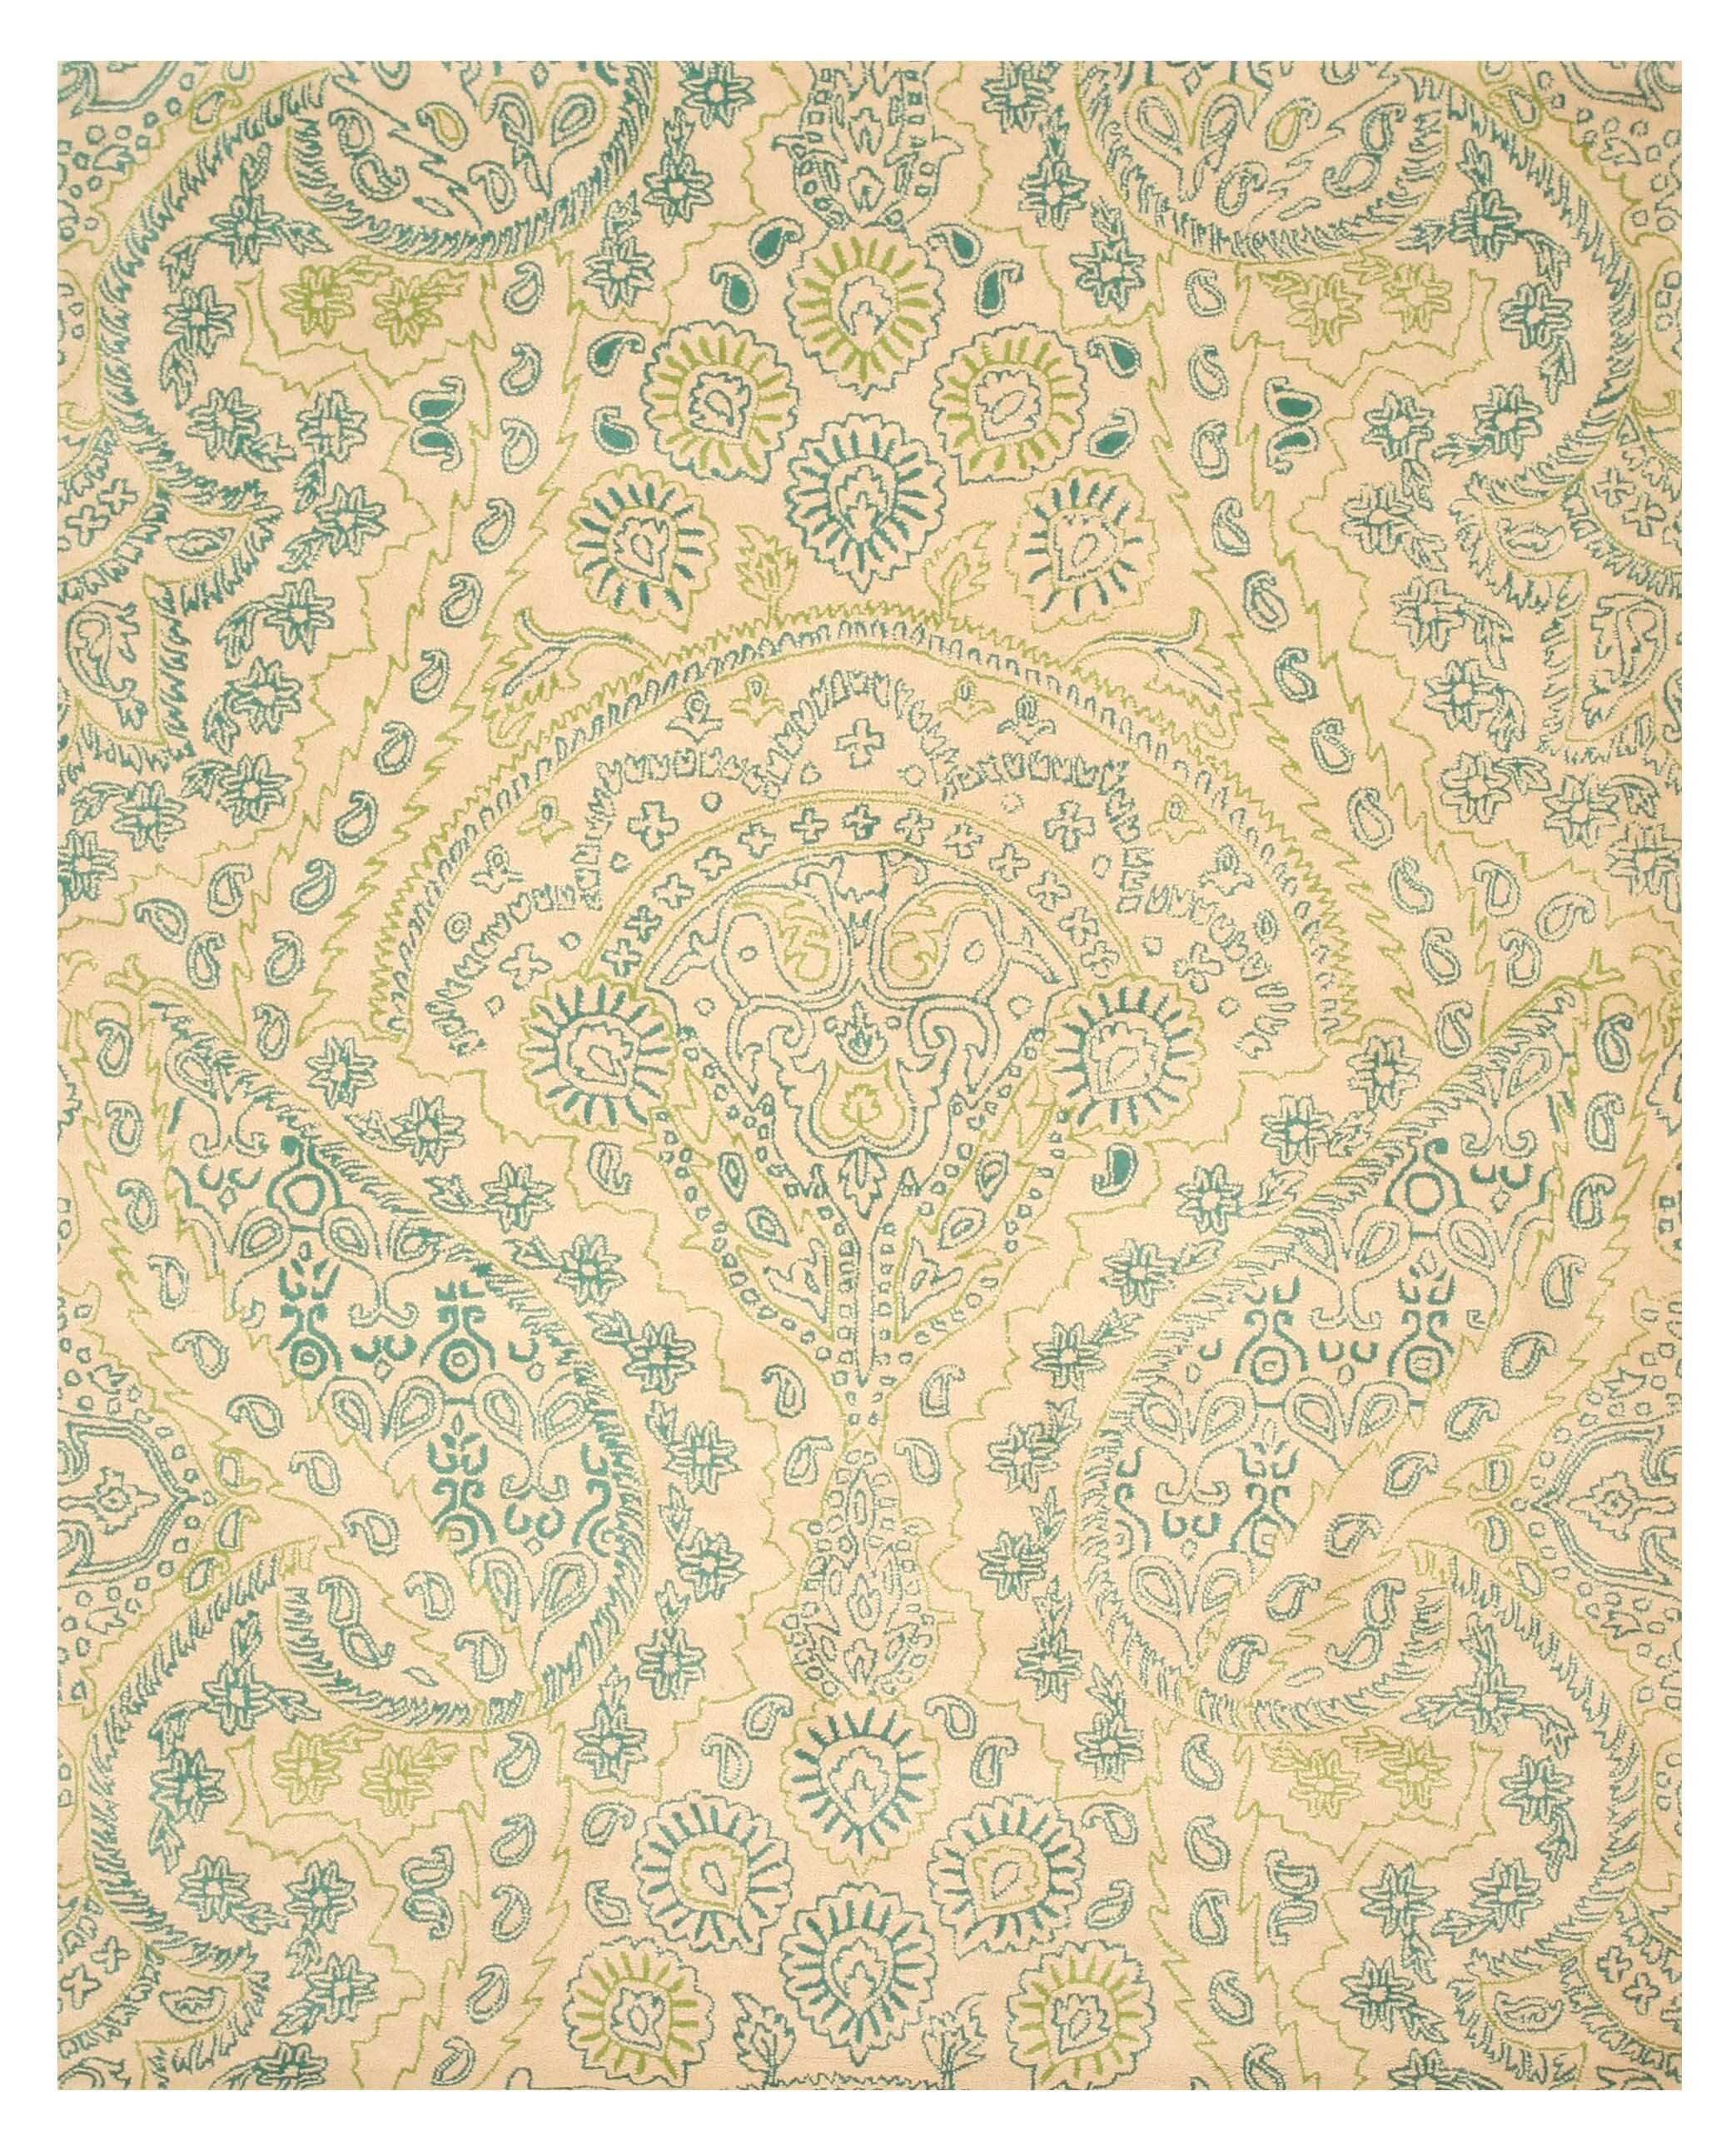 Hand-Tufted Ivory Area Rug1 Rug Size: 5' x 8'